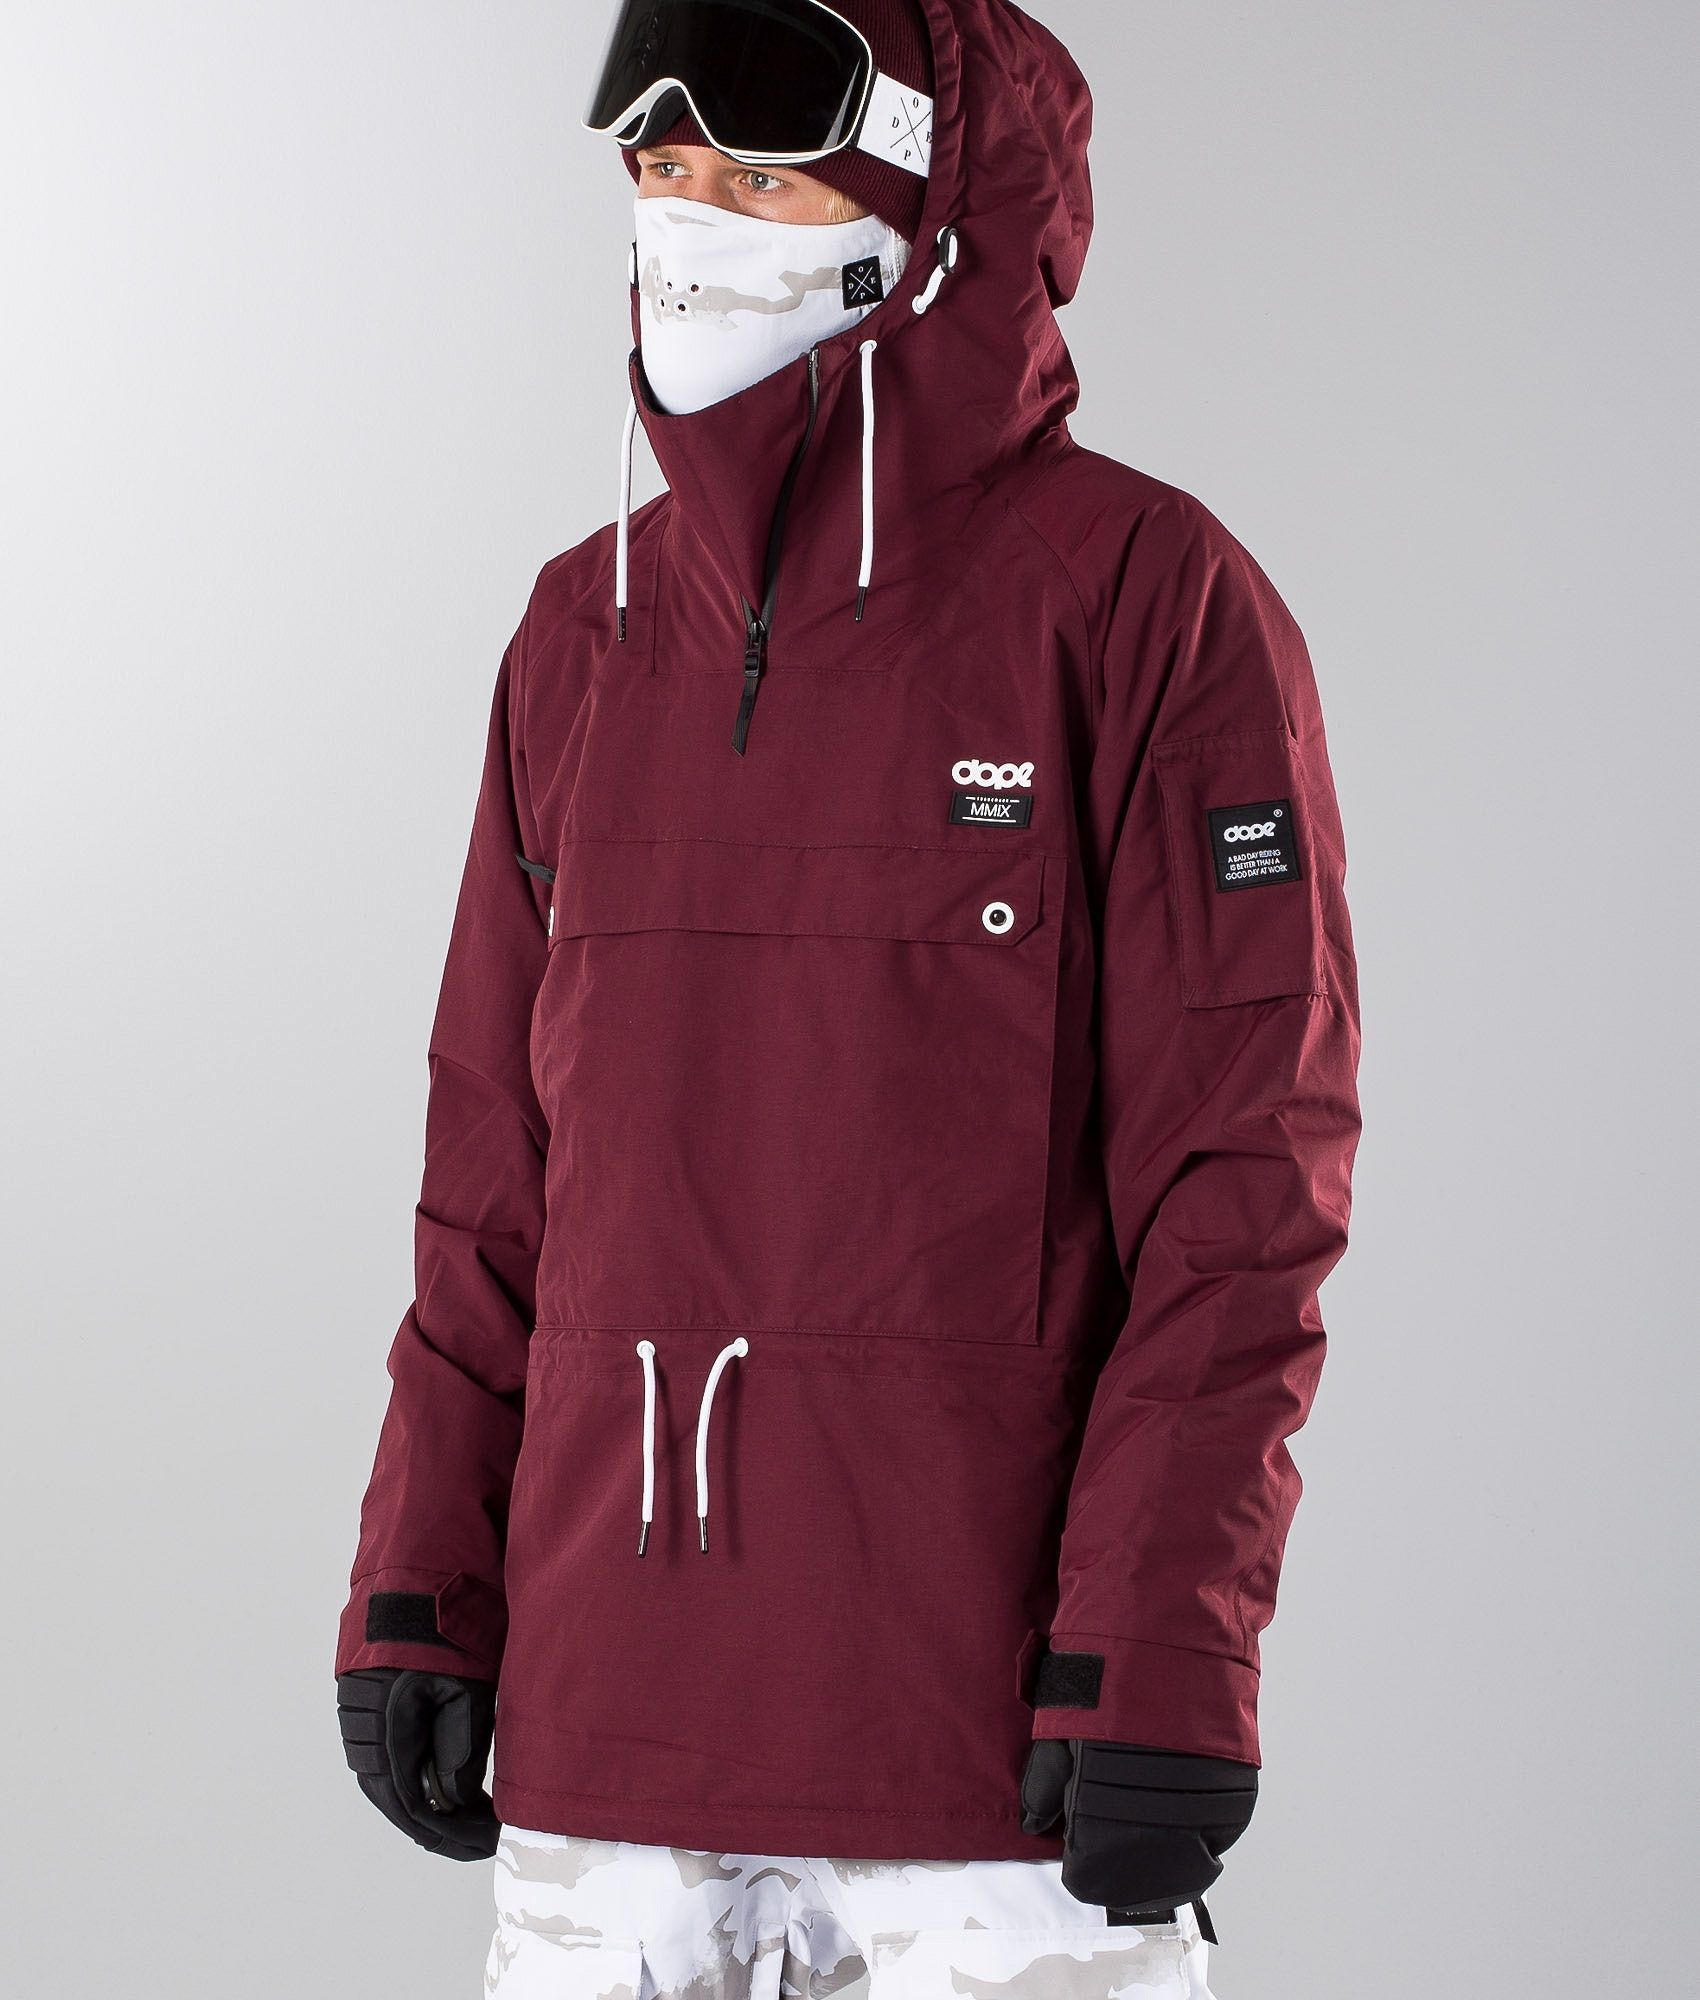 snowboard gear mens ski outfit for me  snowboard gear mens ski outfit for  men c1a2e3e2e